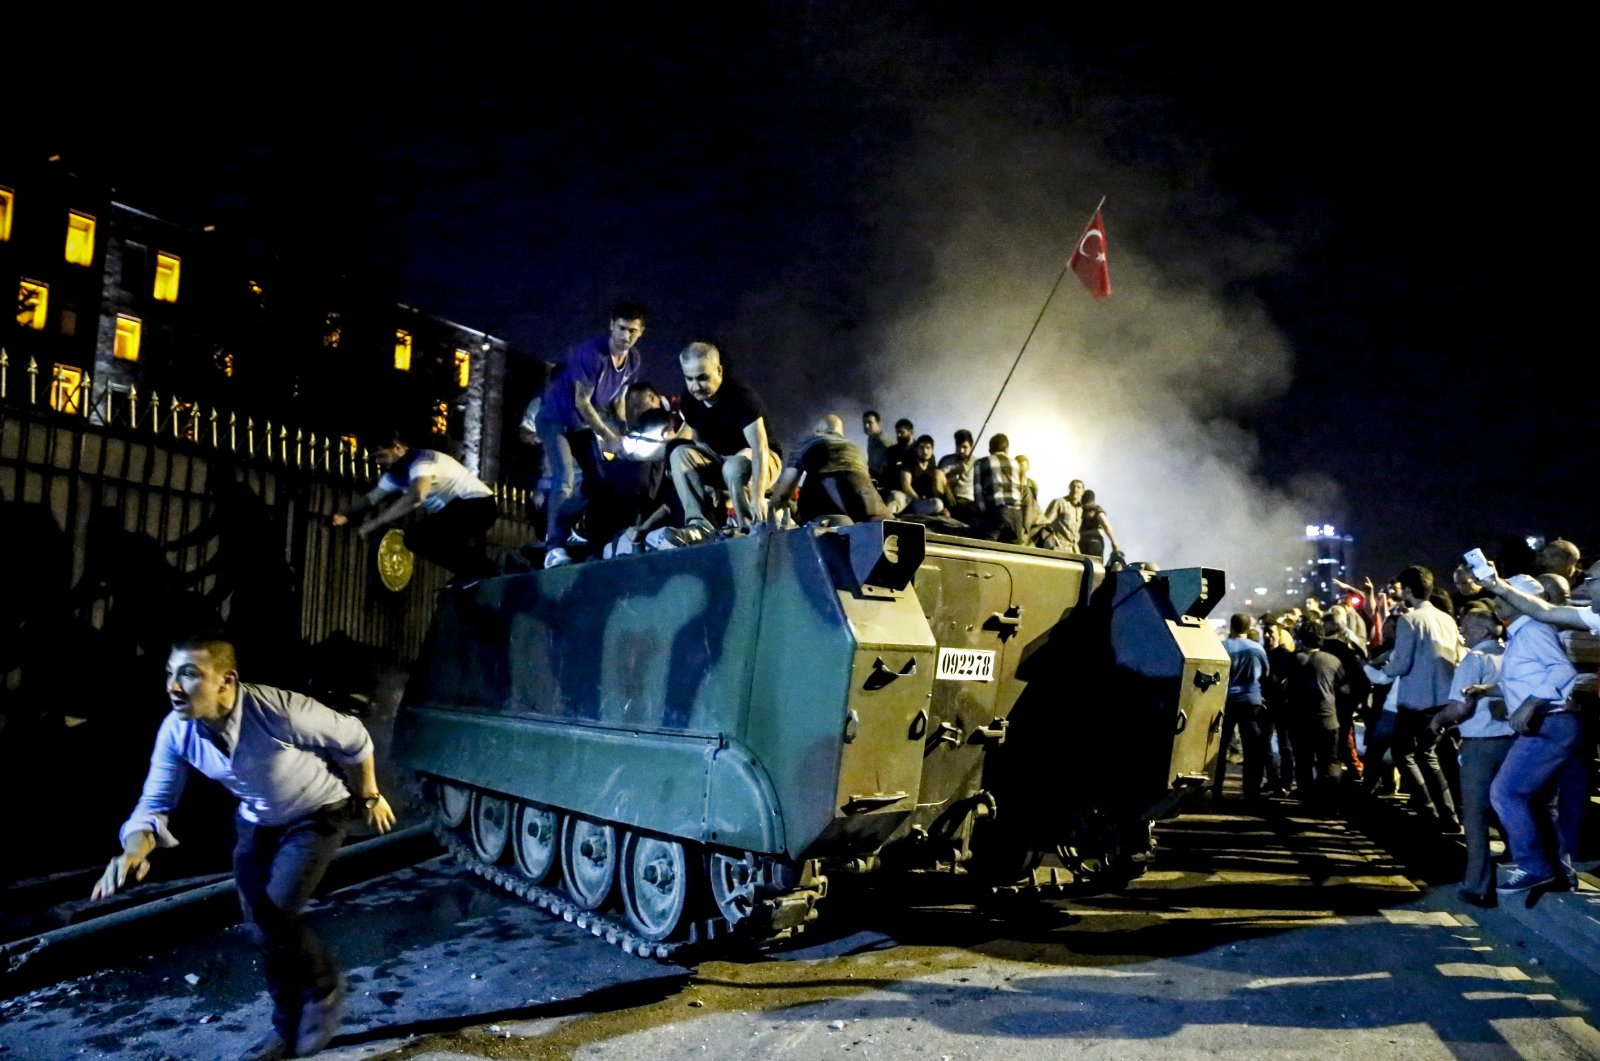 People resisting against the FETÖ coup plotters during the bloody attempted coup of July 15, 2016, Ankara. (AA Photo)